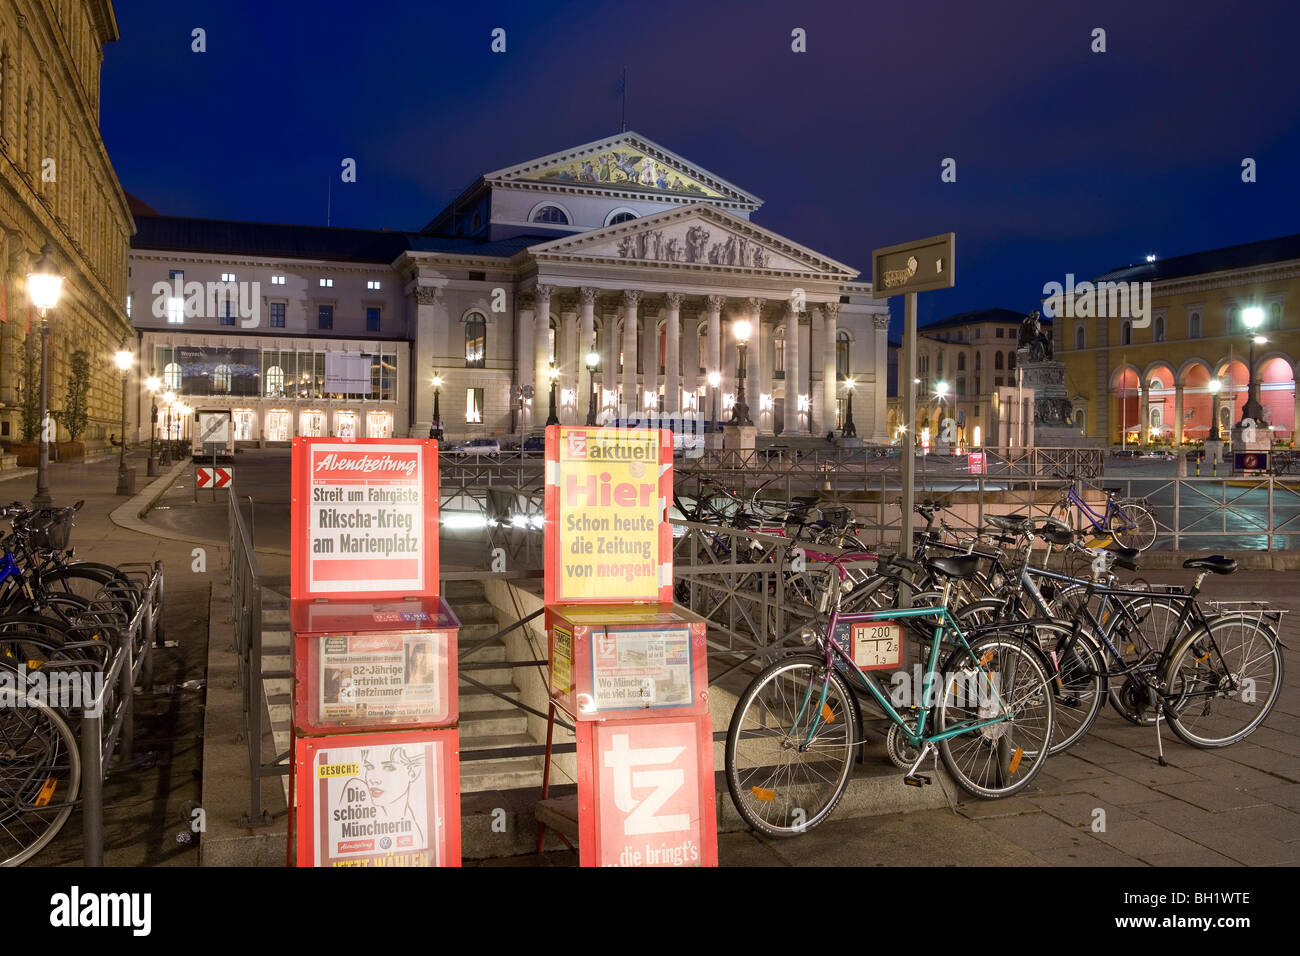 The National Theatre At Square Max Joseph Platz At Night, Munich, Bavaria